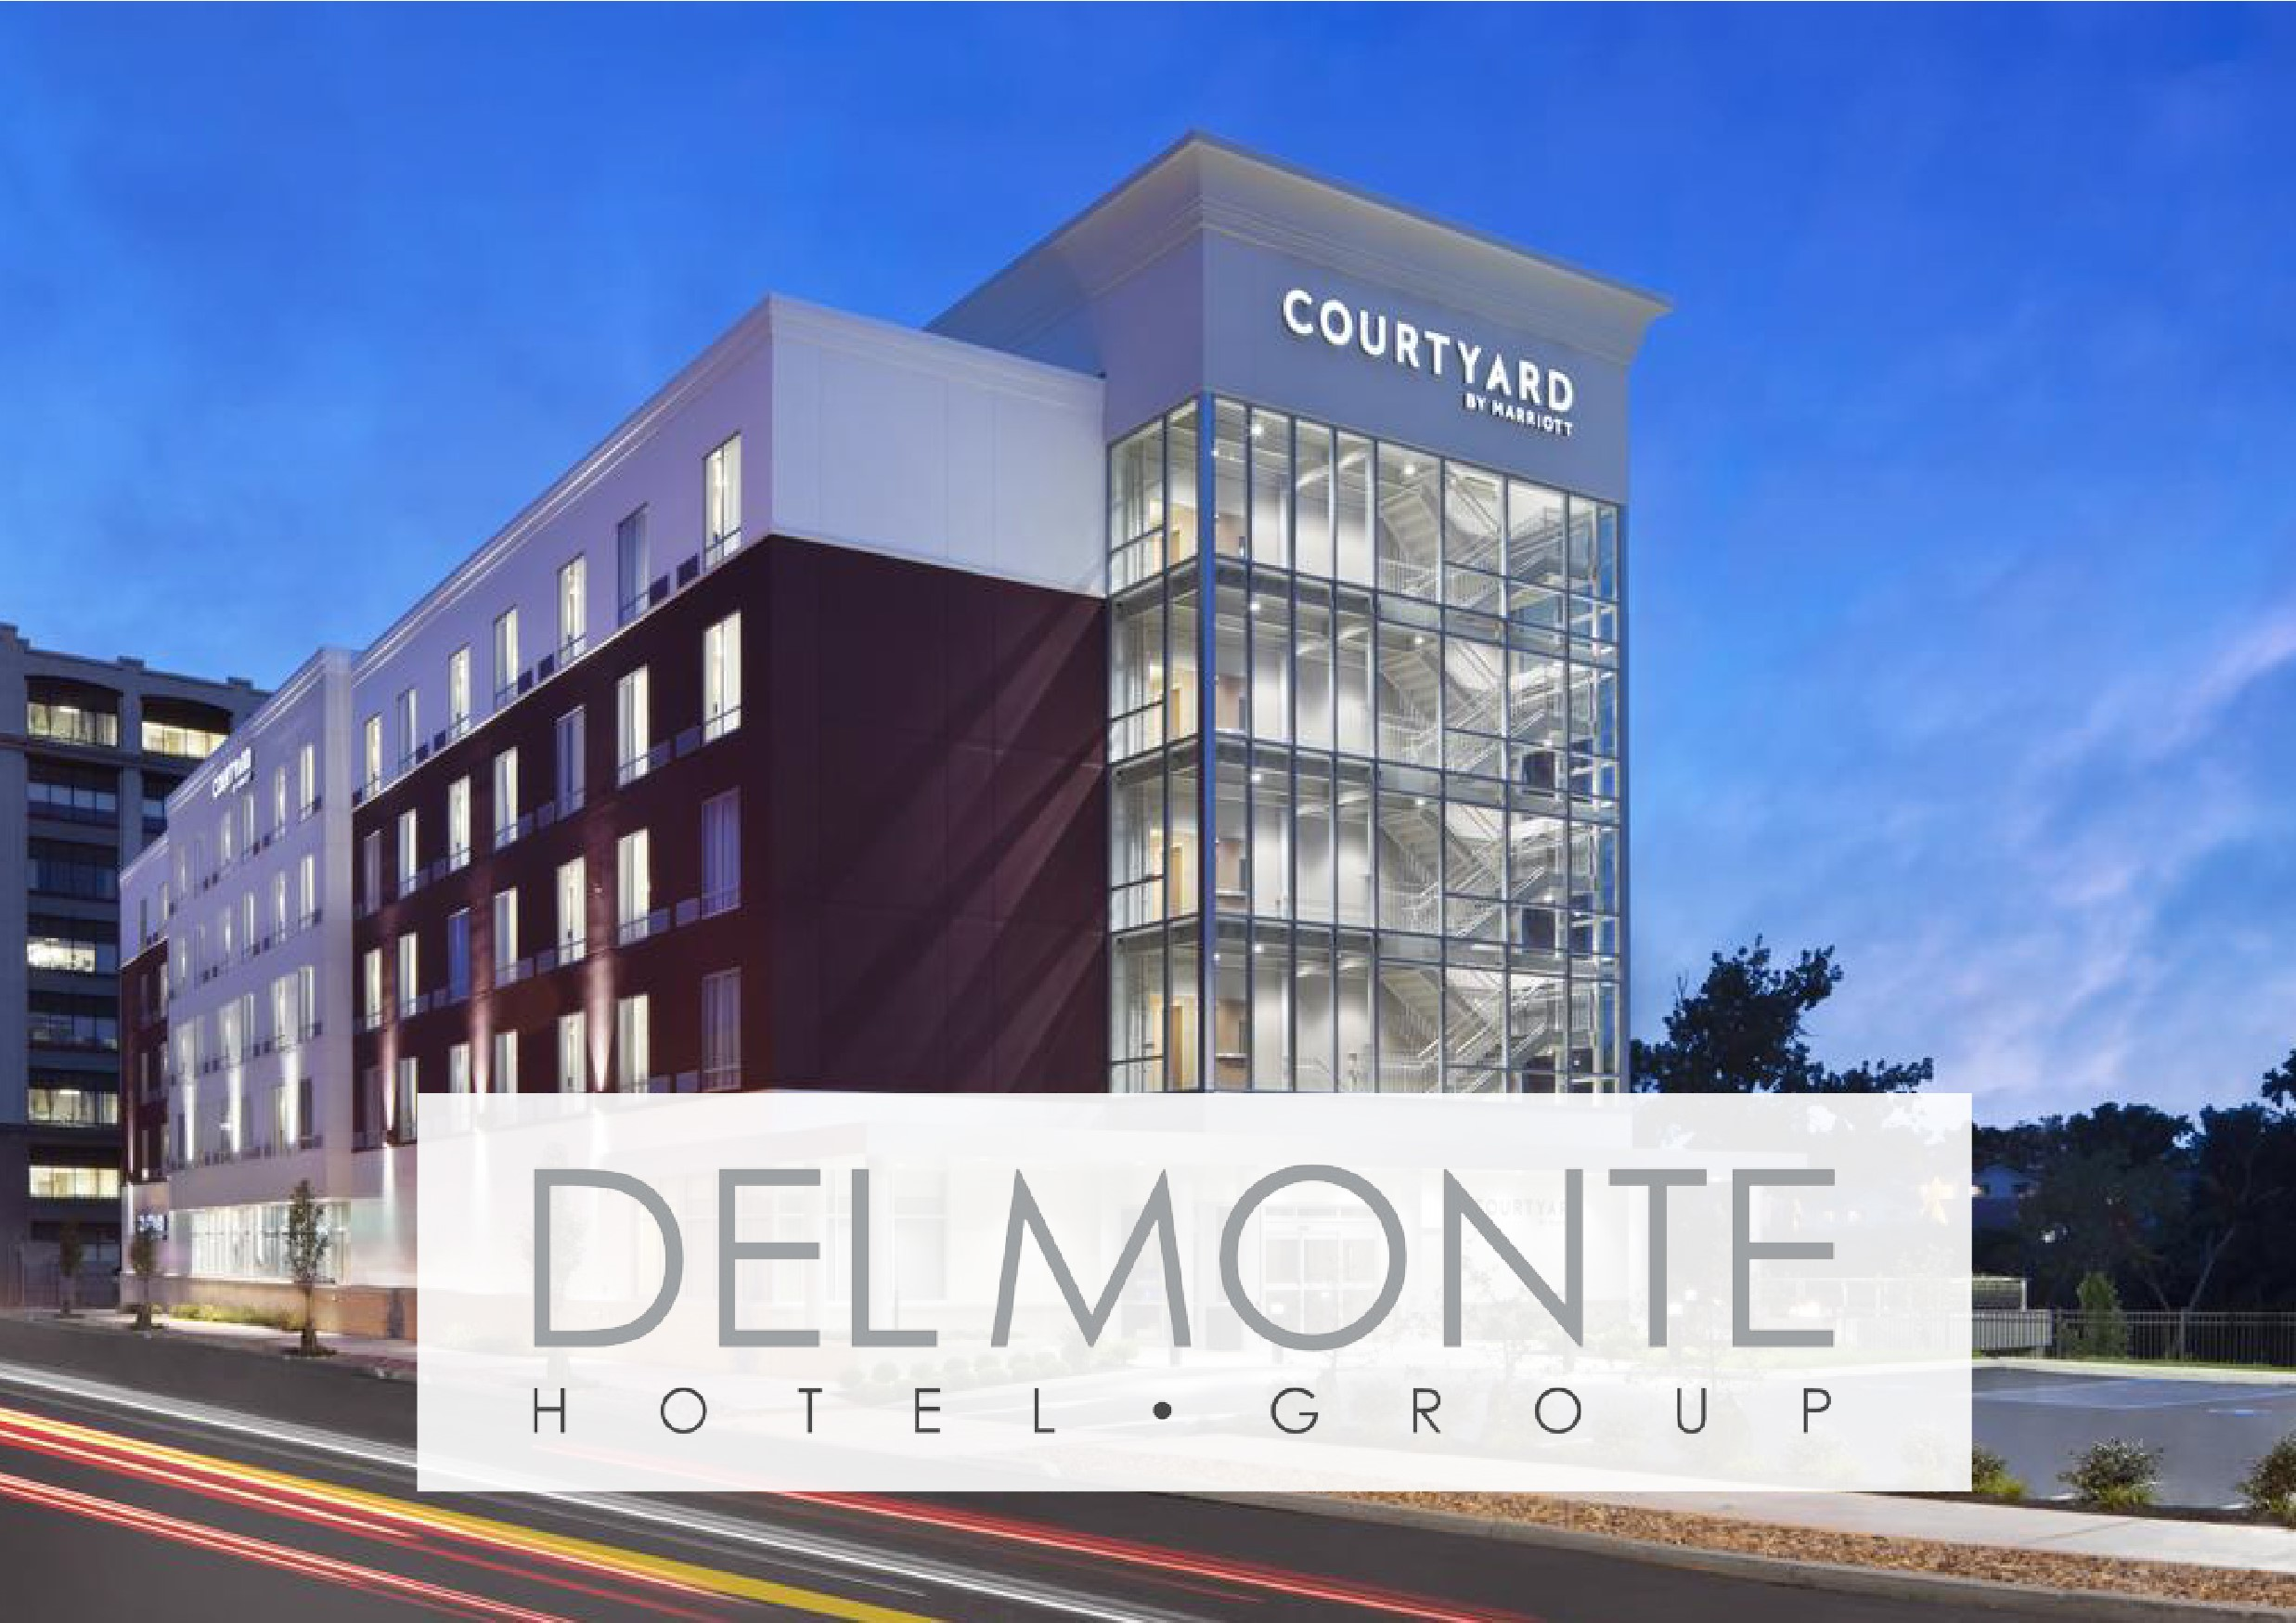 Delmonte Hotel Group